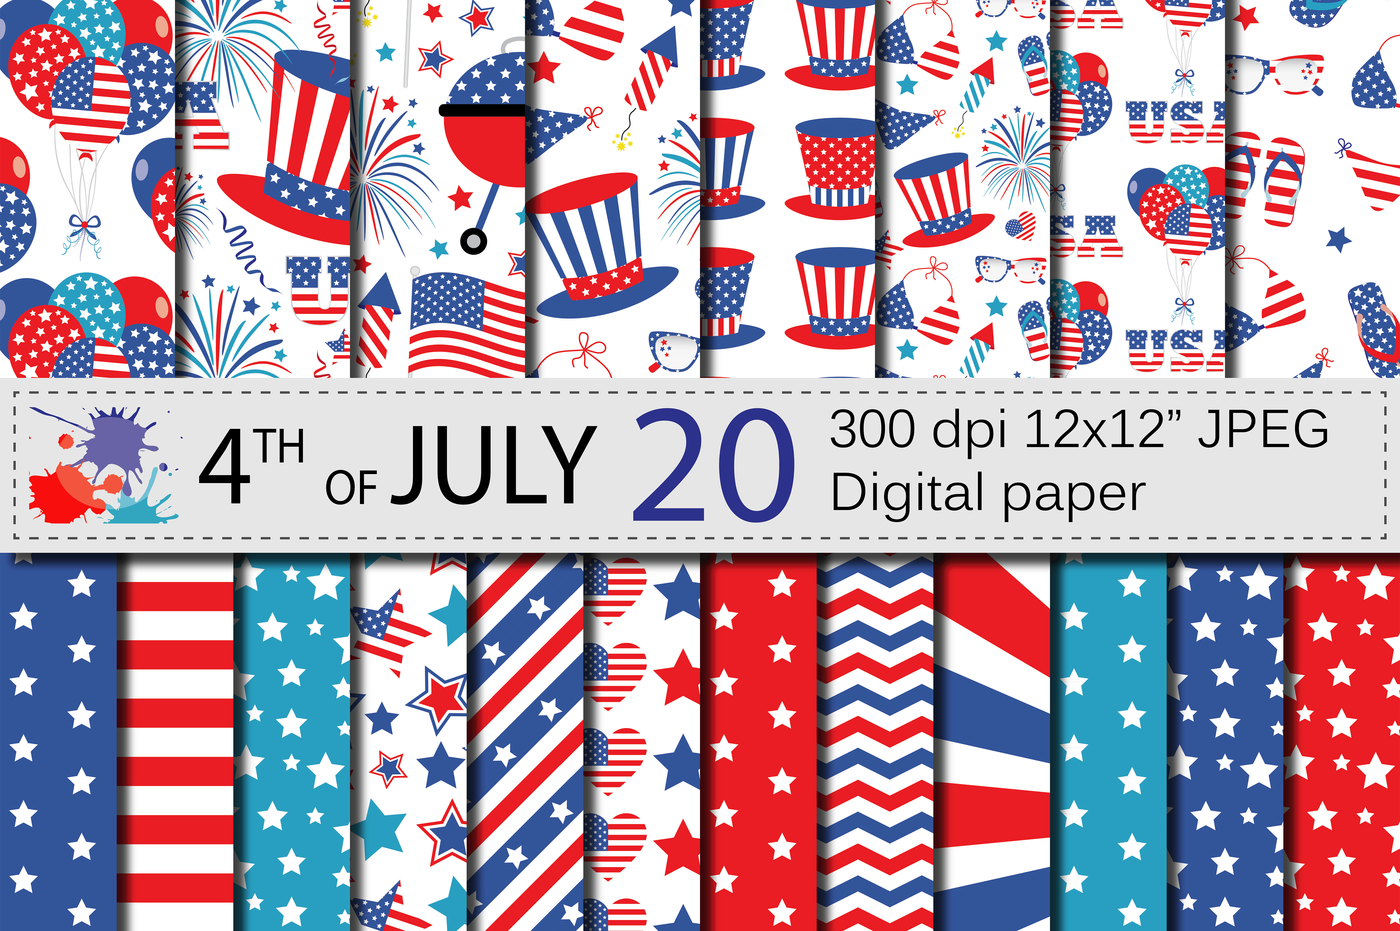 4th Of July Digital Paper Usa Independence Day Patriotic